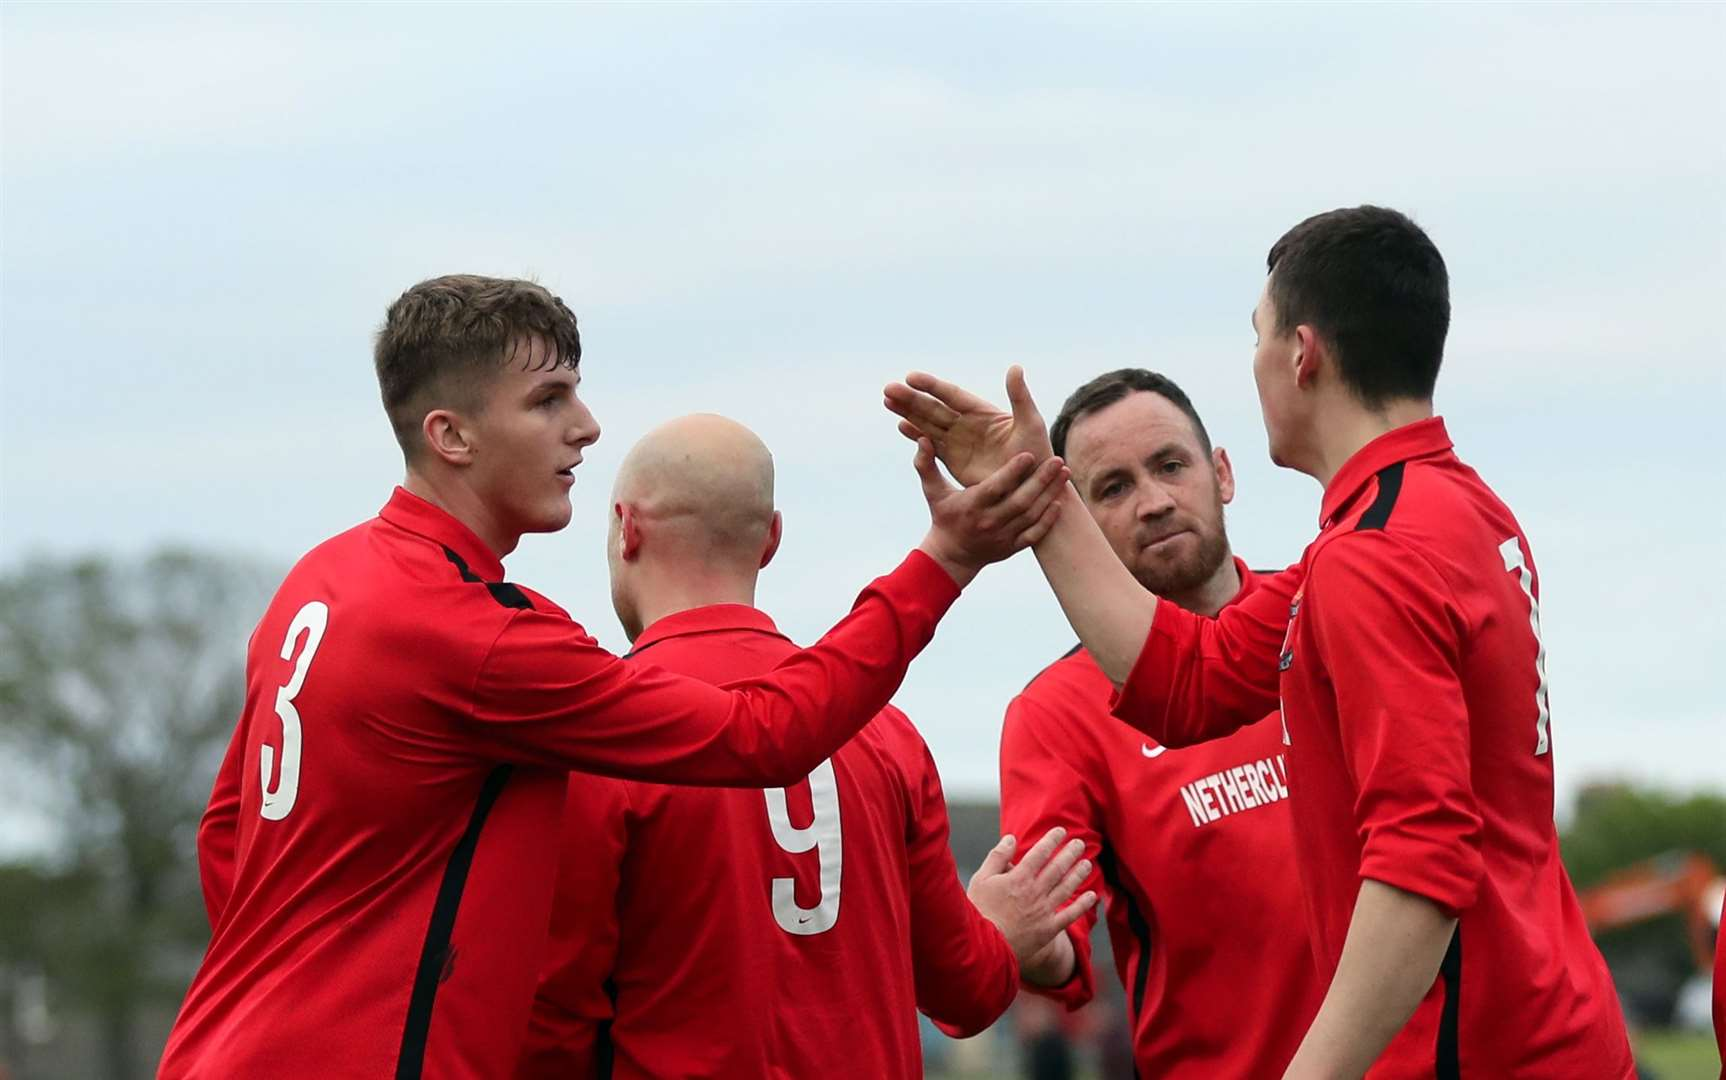 Brandon Sinclair (number 3) congratulates Ryan Campbell on scoring Groats' third goal against Acks. Picture: James Gunn